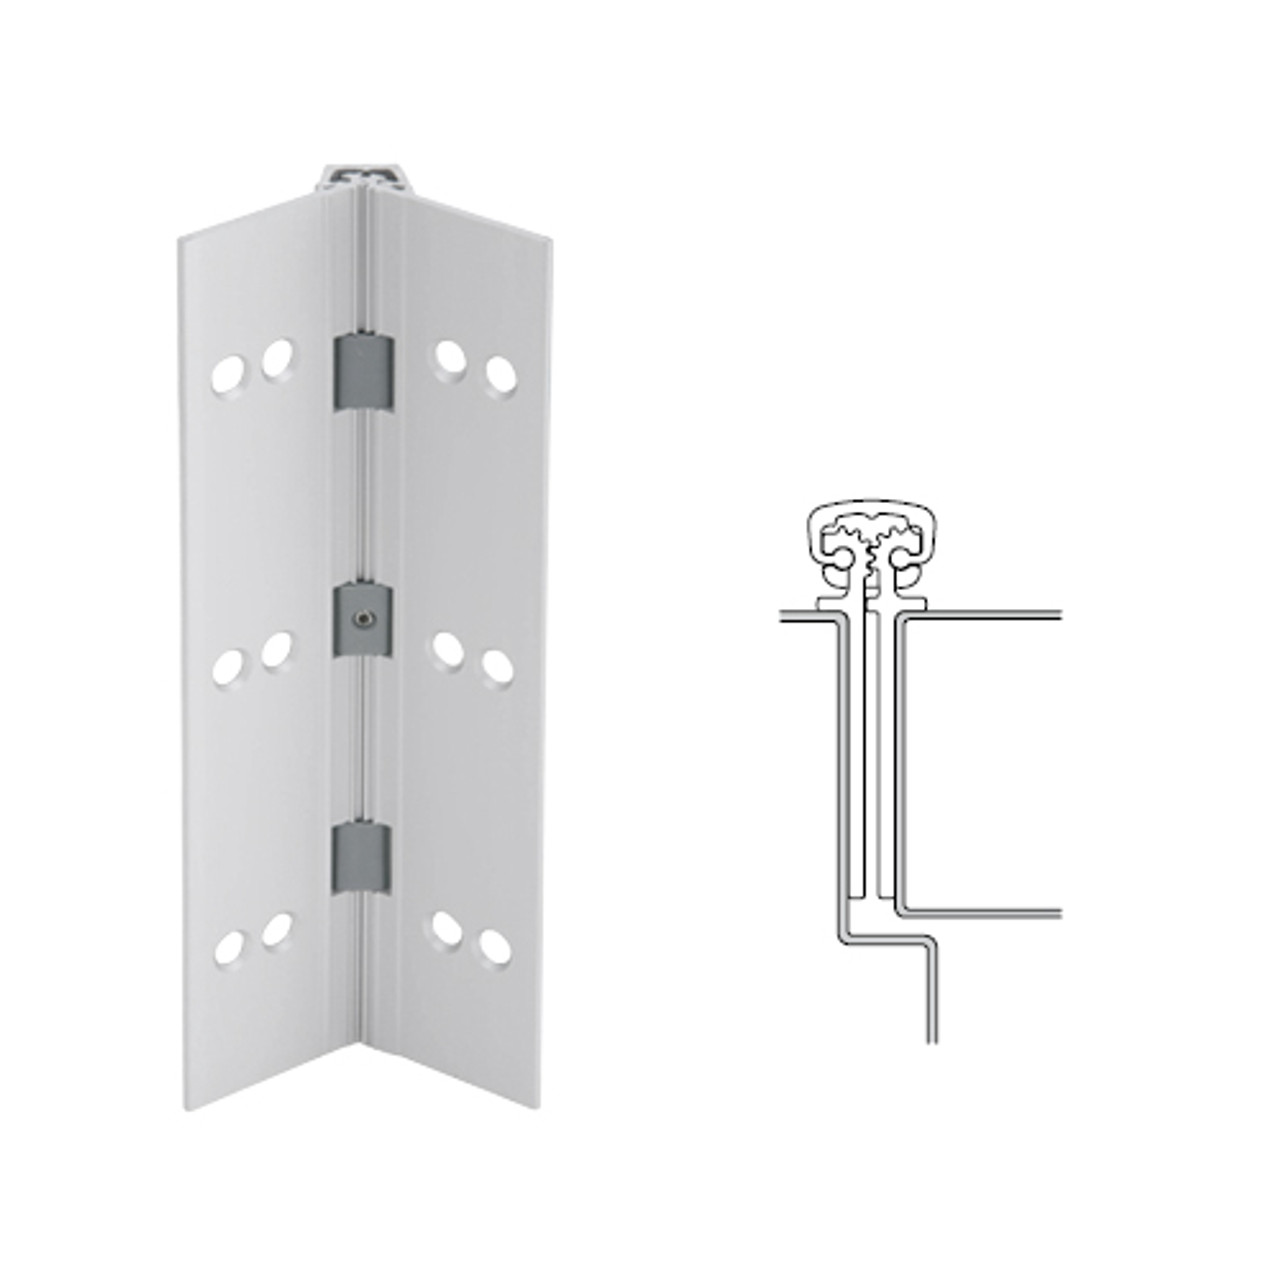 027XY-US28-83-SECHM IVES Full Mortise Continuous Geared Hinges with Security Screws - Hex Pin Drive in Satin Aluminum